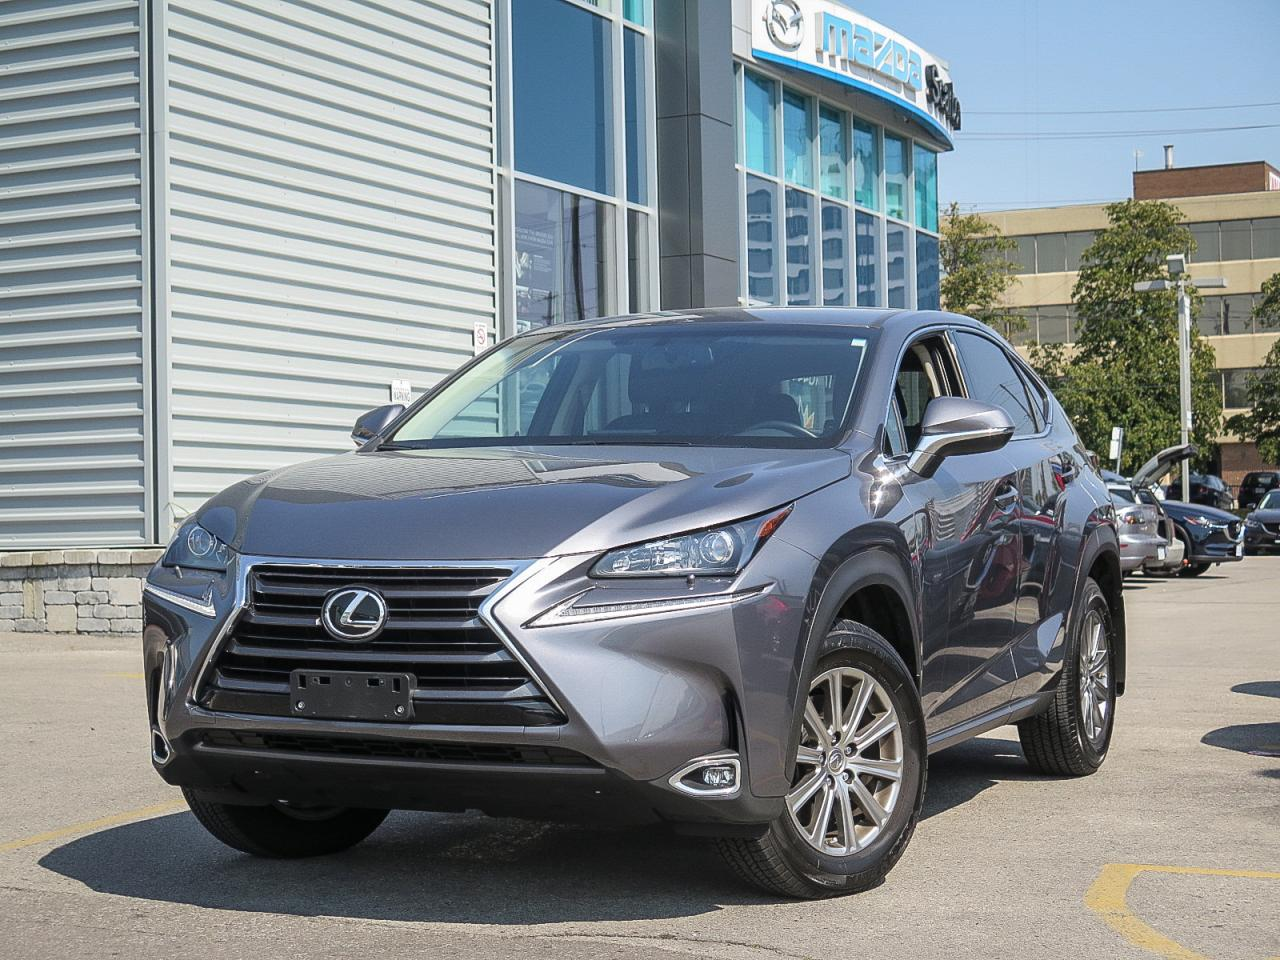 used 2016 lexus nx 200t awd one owner no accidents reported for sale in scarborough. Black Bedroom Furniture Sets. Home Design Ideas